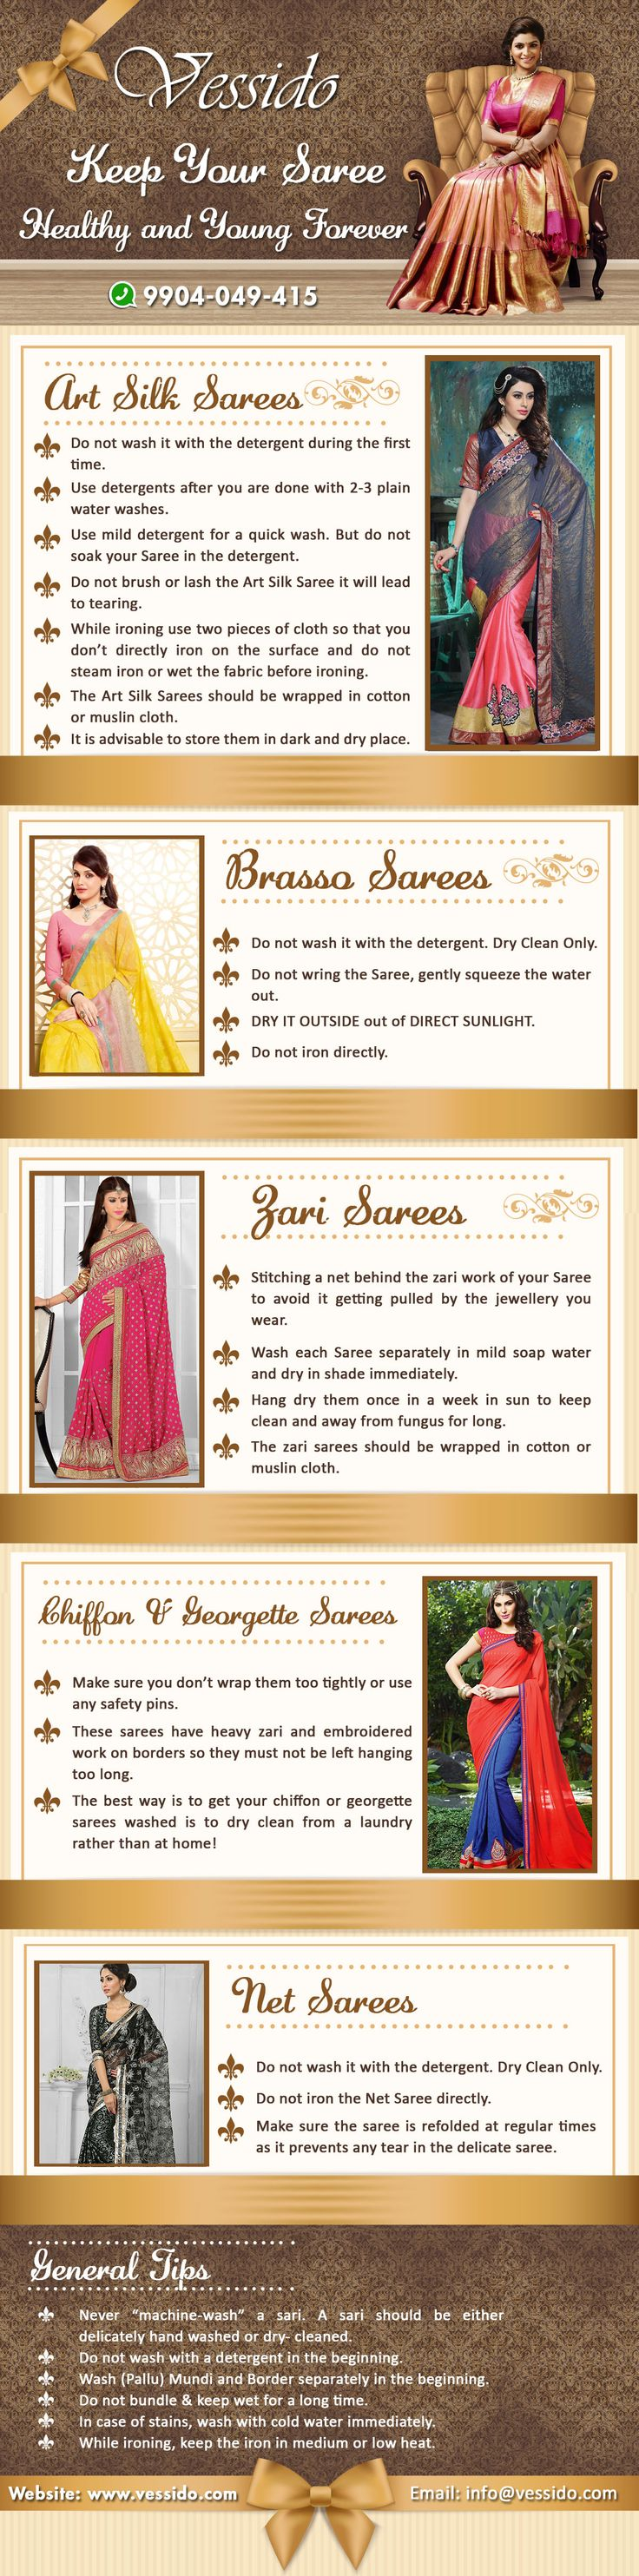 Vessido.com presenting useful tips to maintaining your gorgeous ethnic Sarees Healthy and Young Forever and preserving their colour and texture